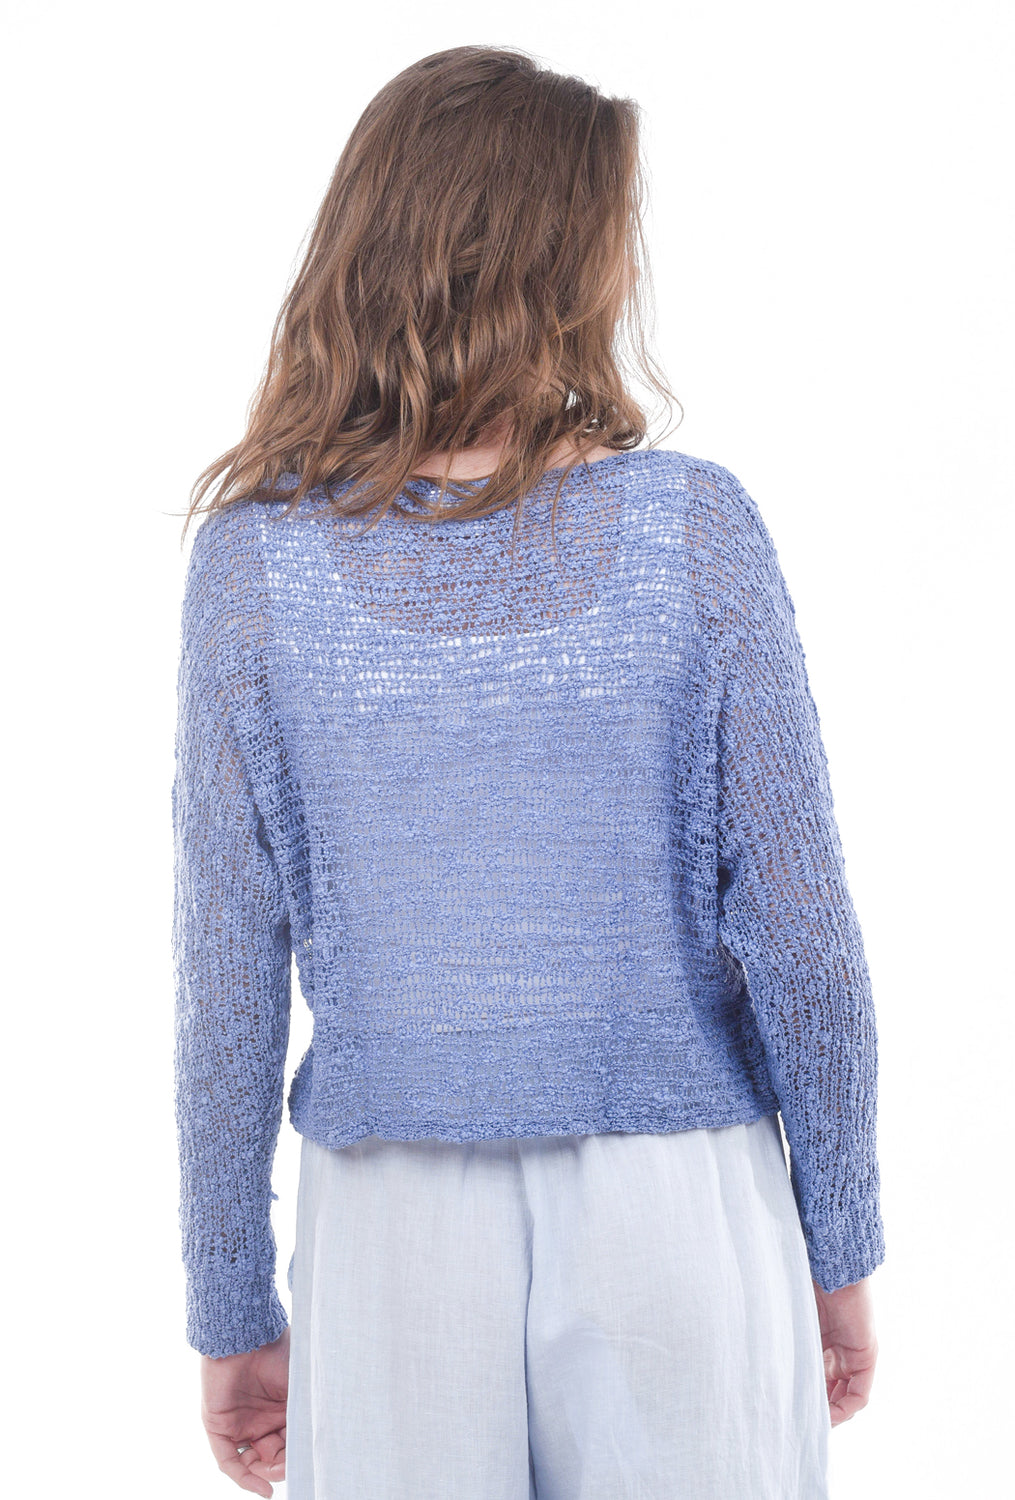 Island Tribe Knits Soho Crochet Pullover, Periwinkle Blue